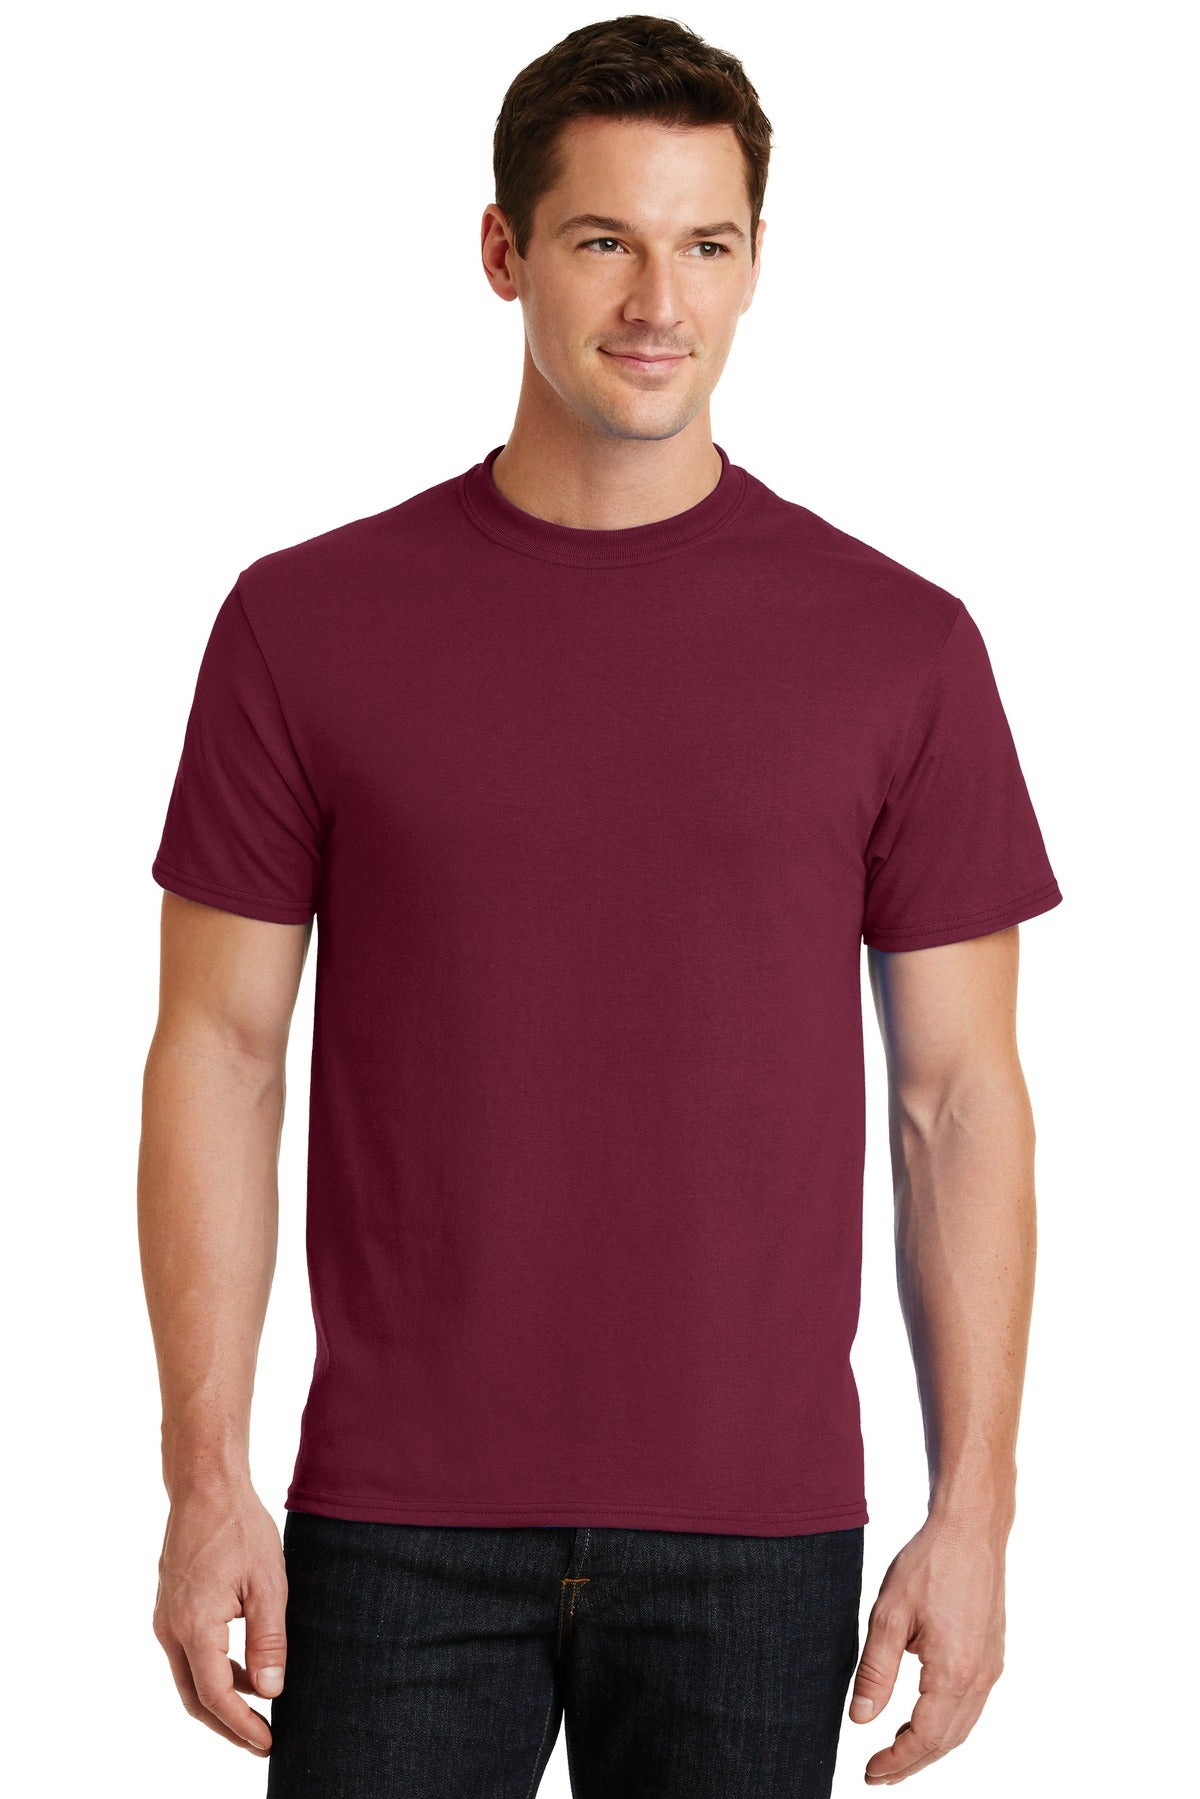 Cardinal Port & Company - Core Blend T-Shirt